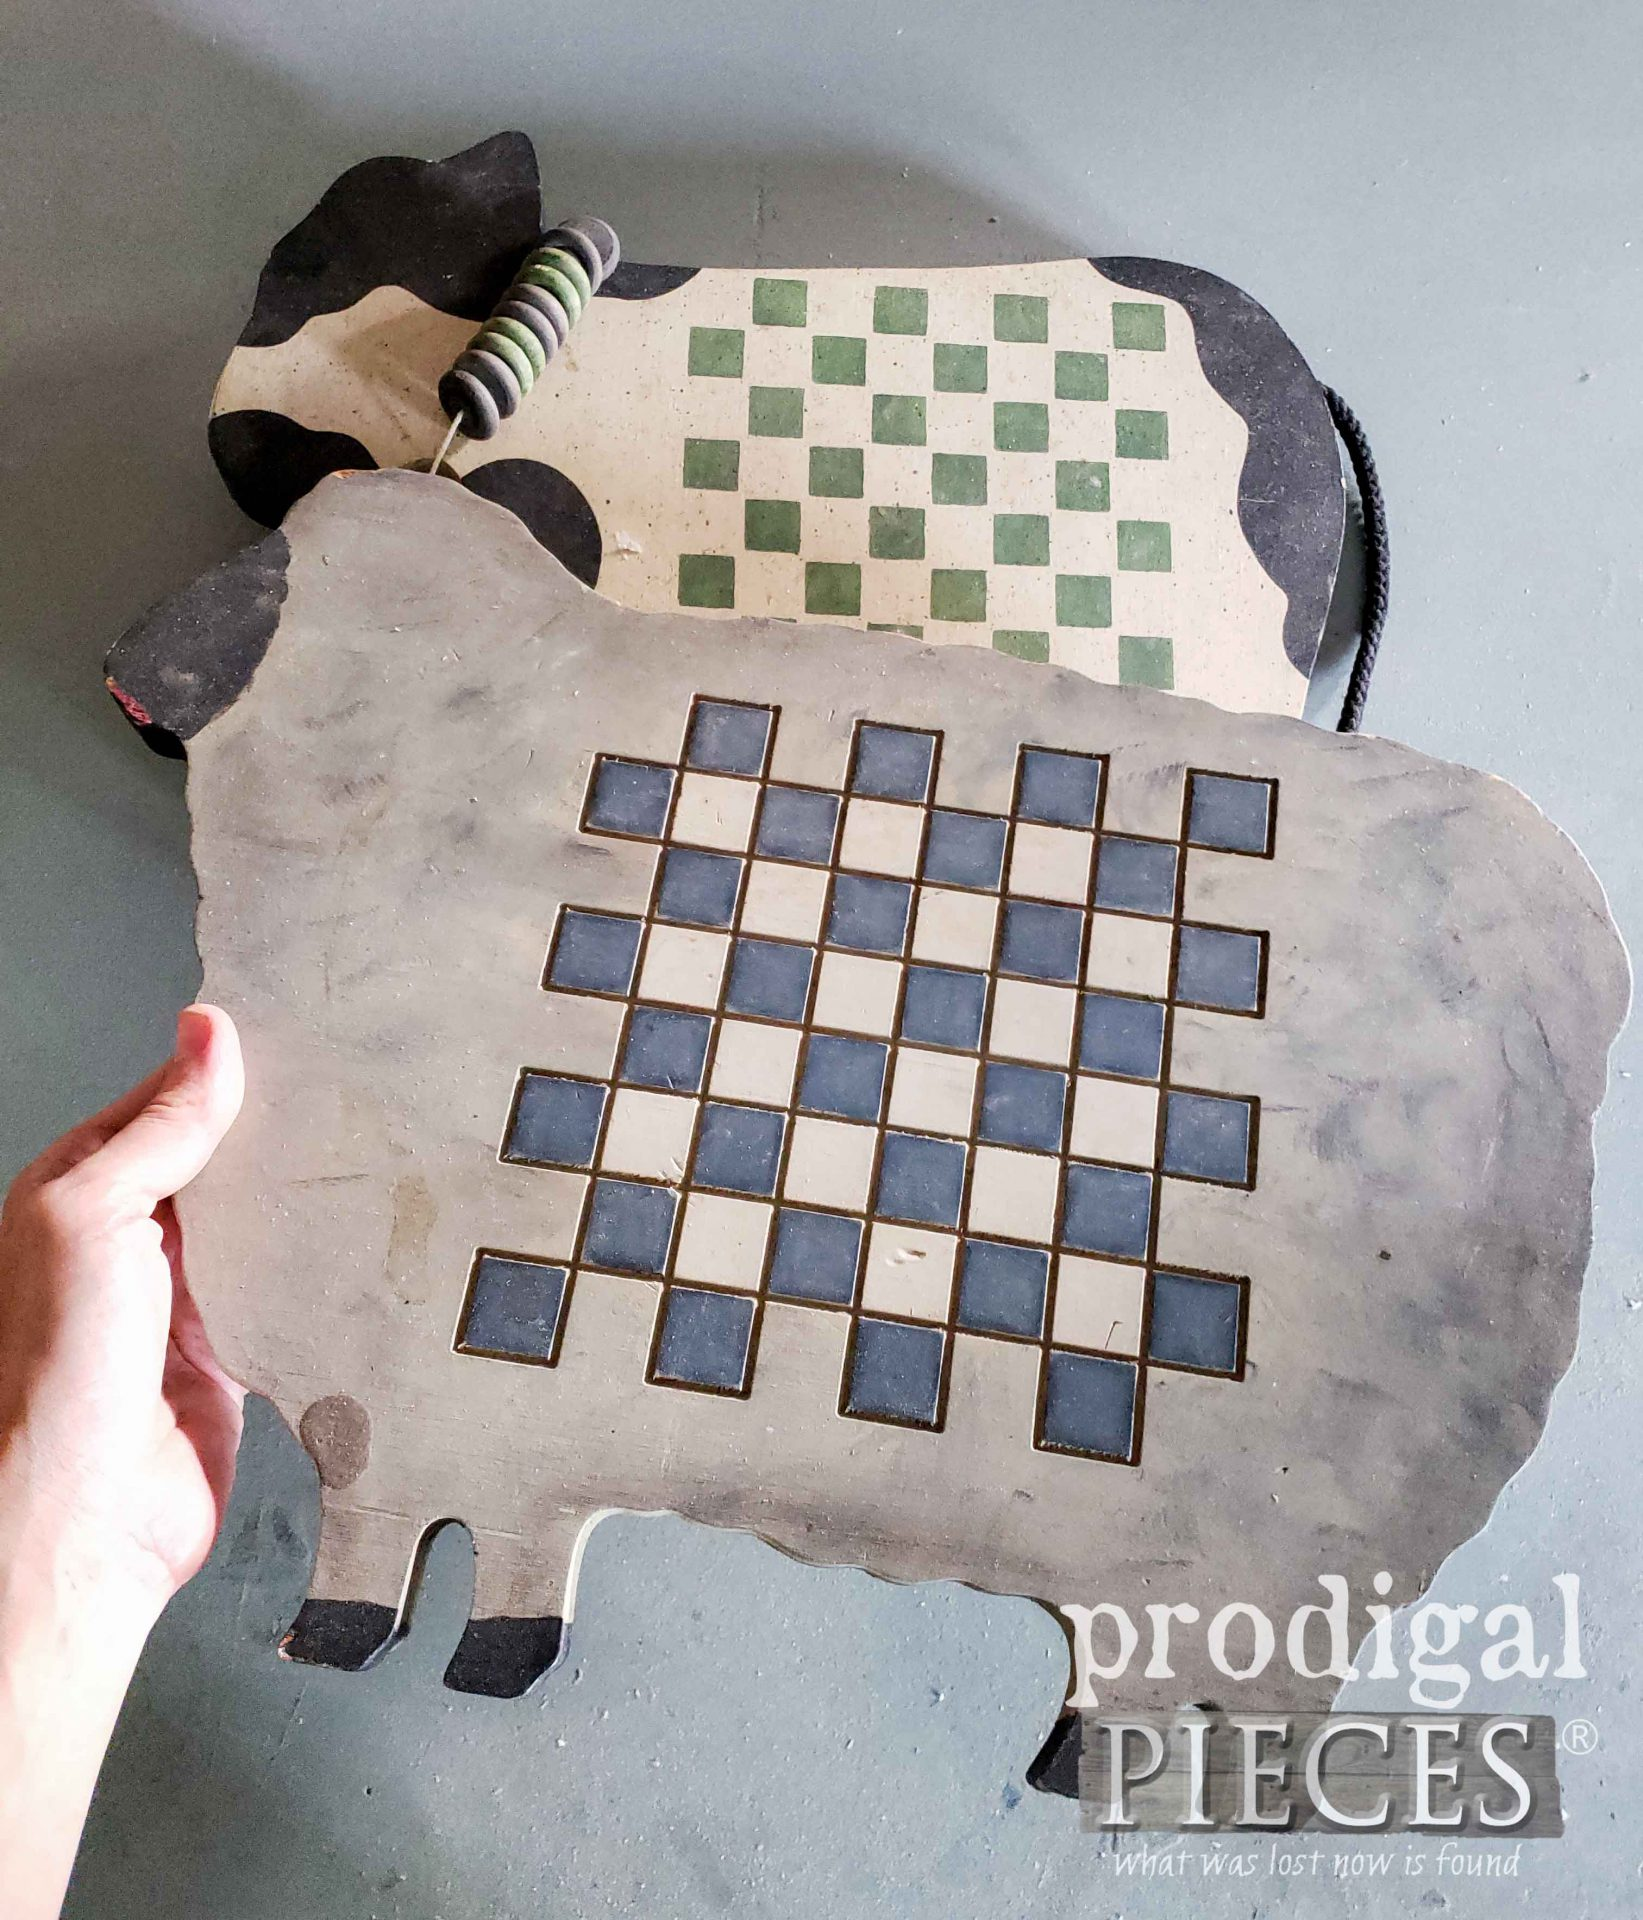 Country Cute Chessboard Sheep before makeover | prodigalpieces.com